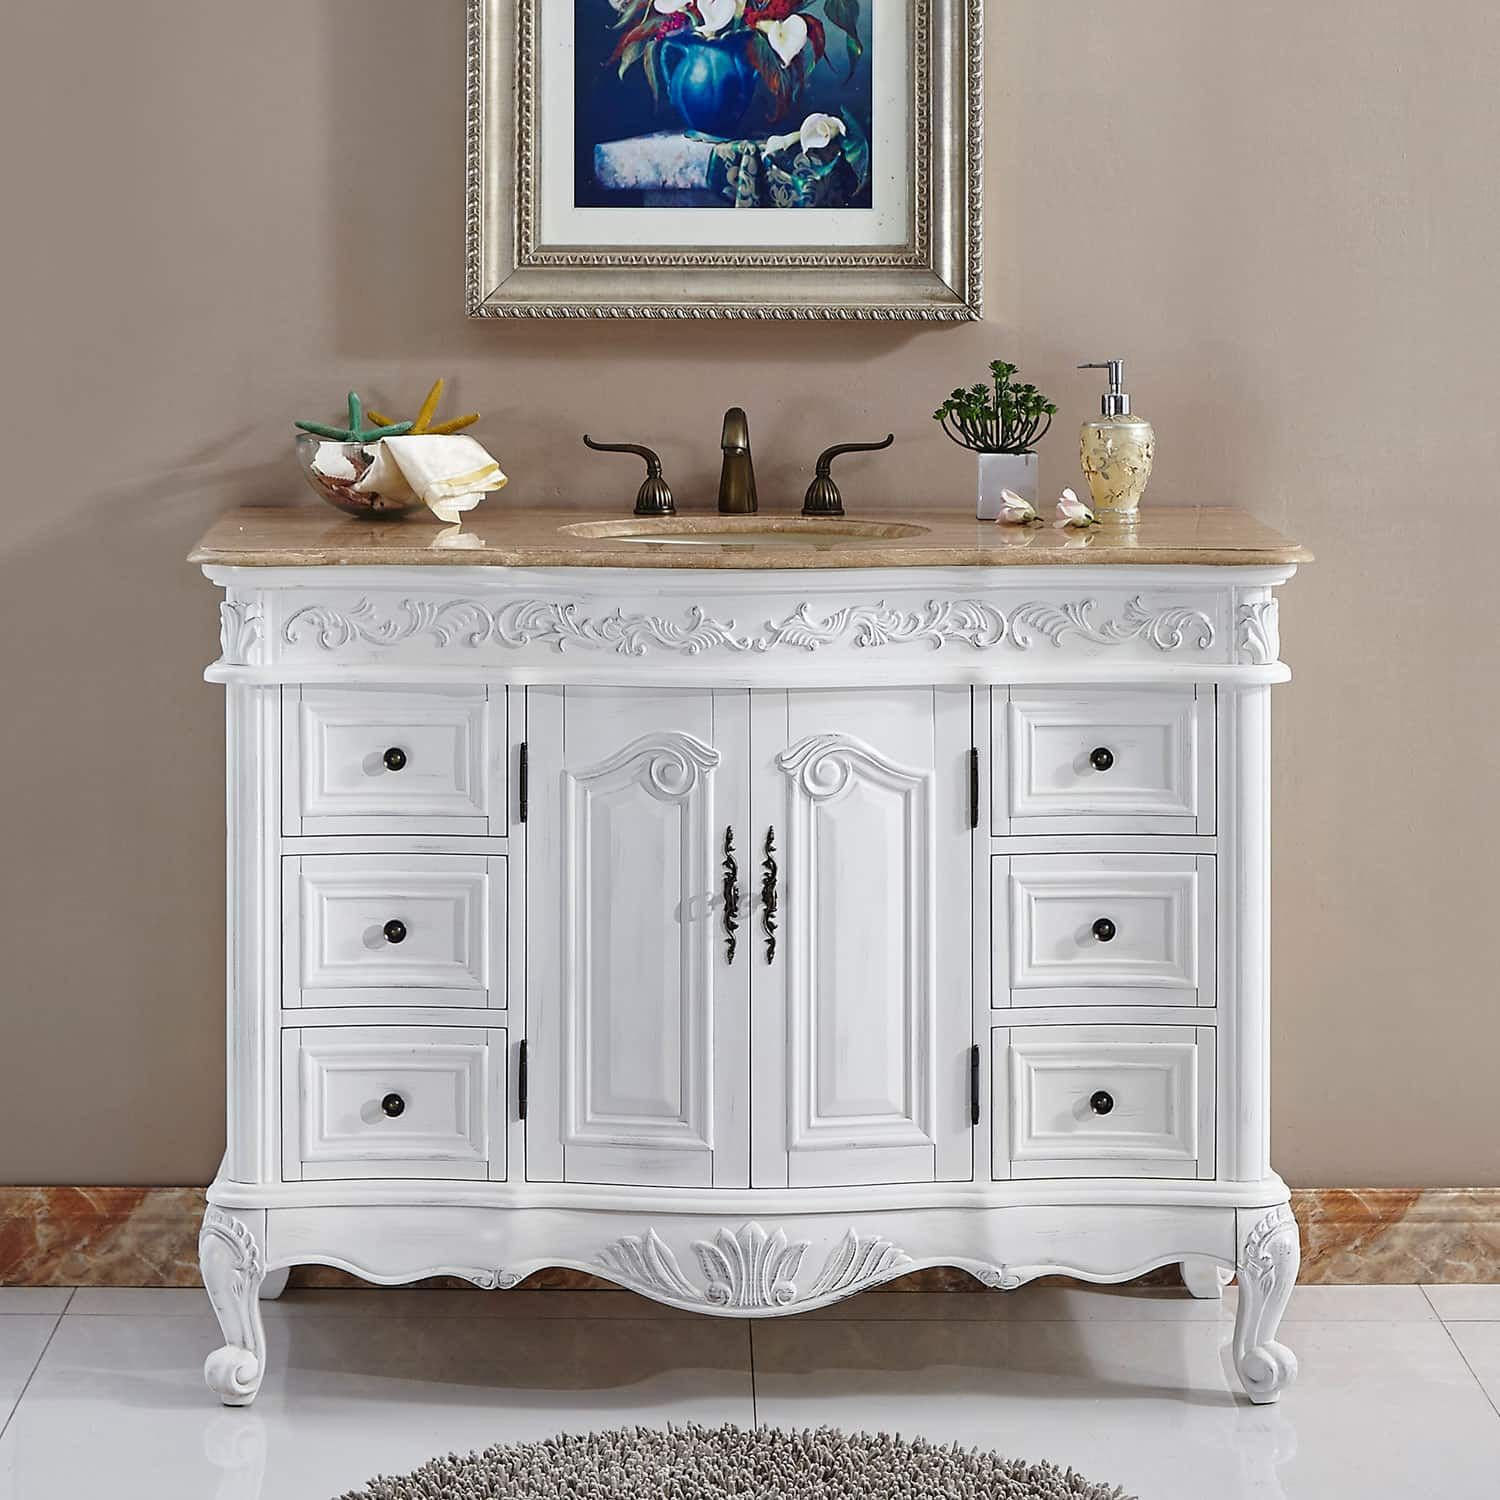 Silkroad Exclusive Upland Bathroom Single Sink Vanity Ivory f